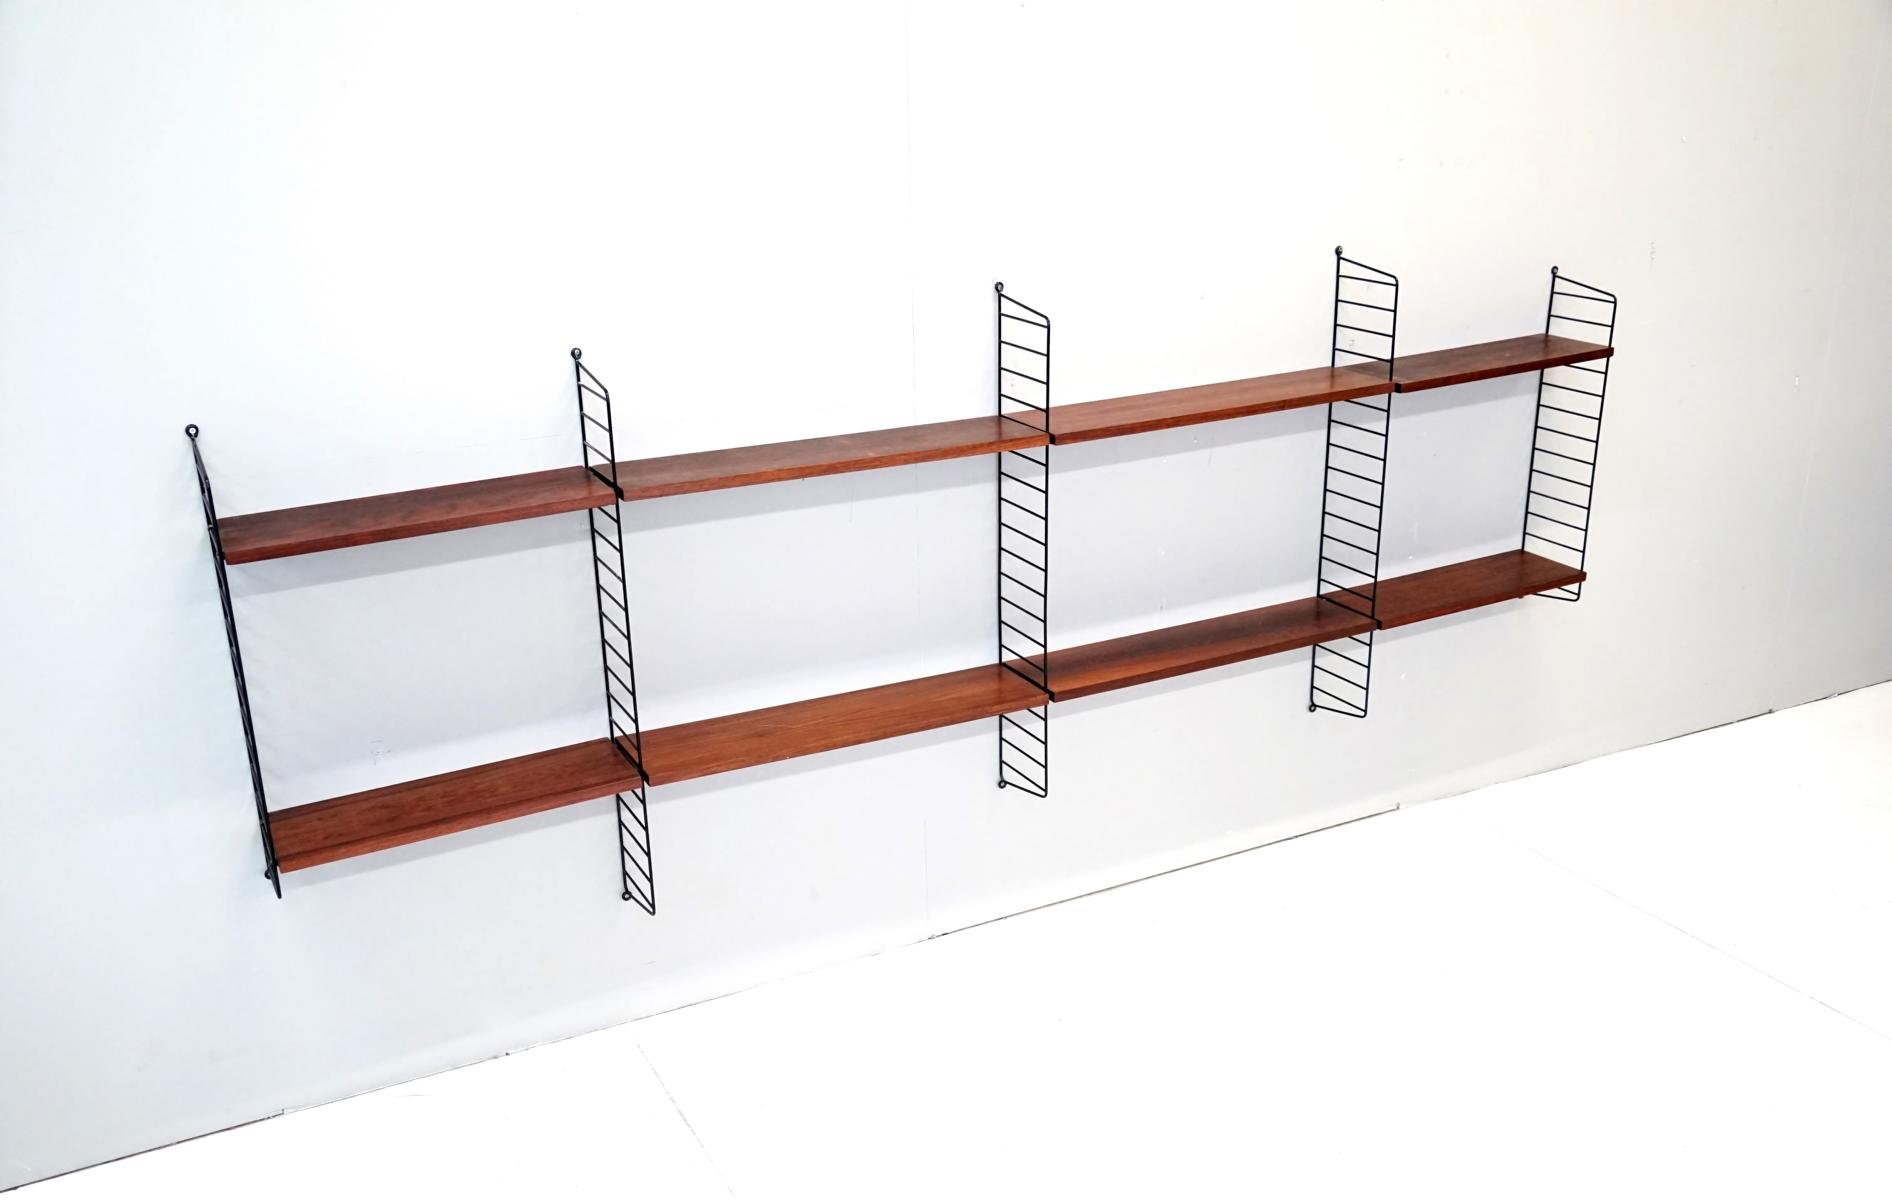 storage roll pic shelves warehouse product shelf feature pallet products racks shelving out rack industrial pull